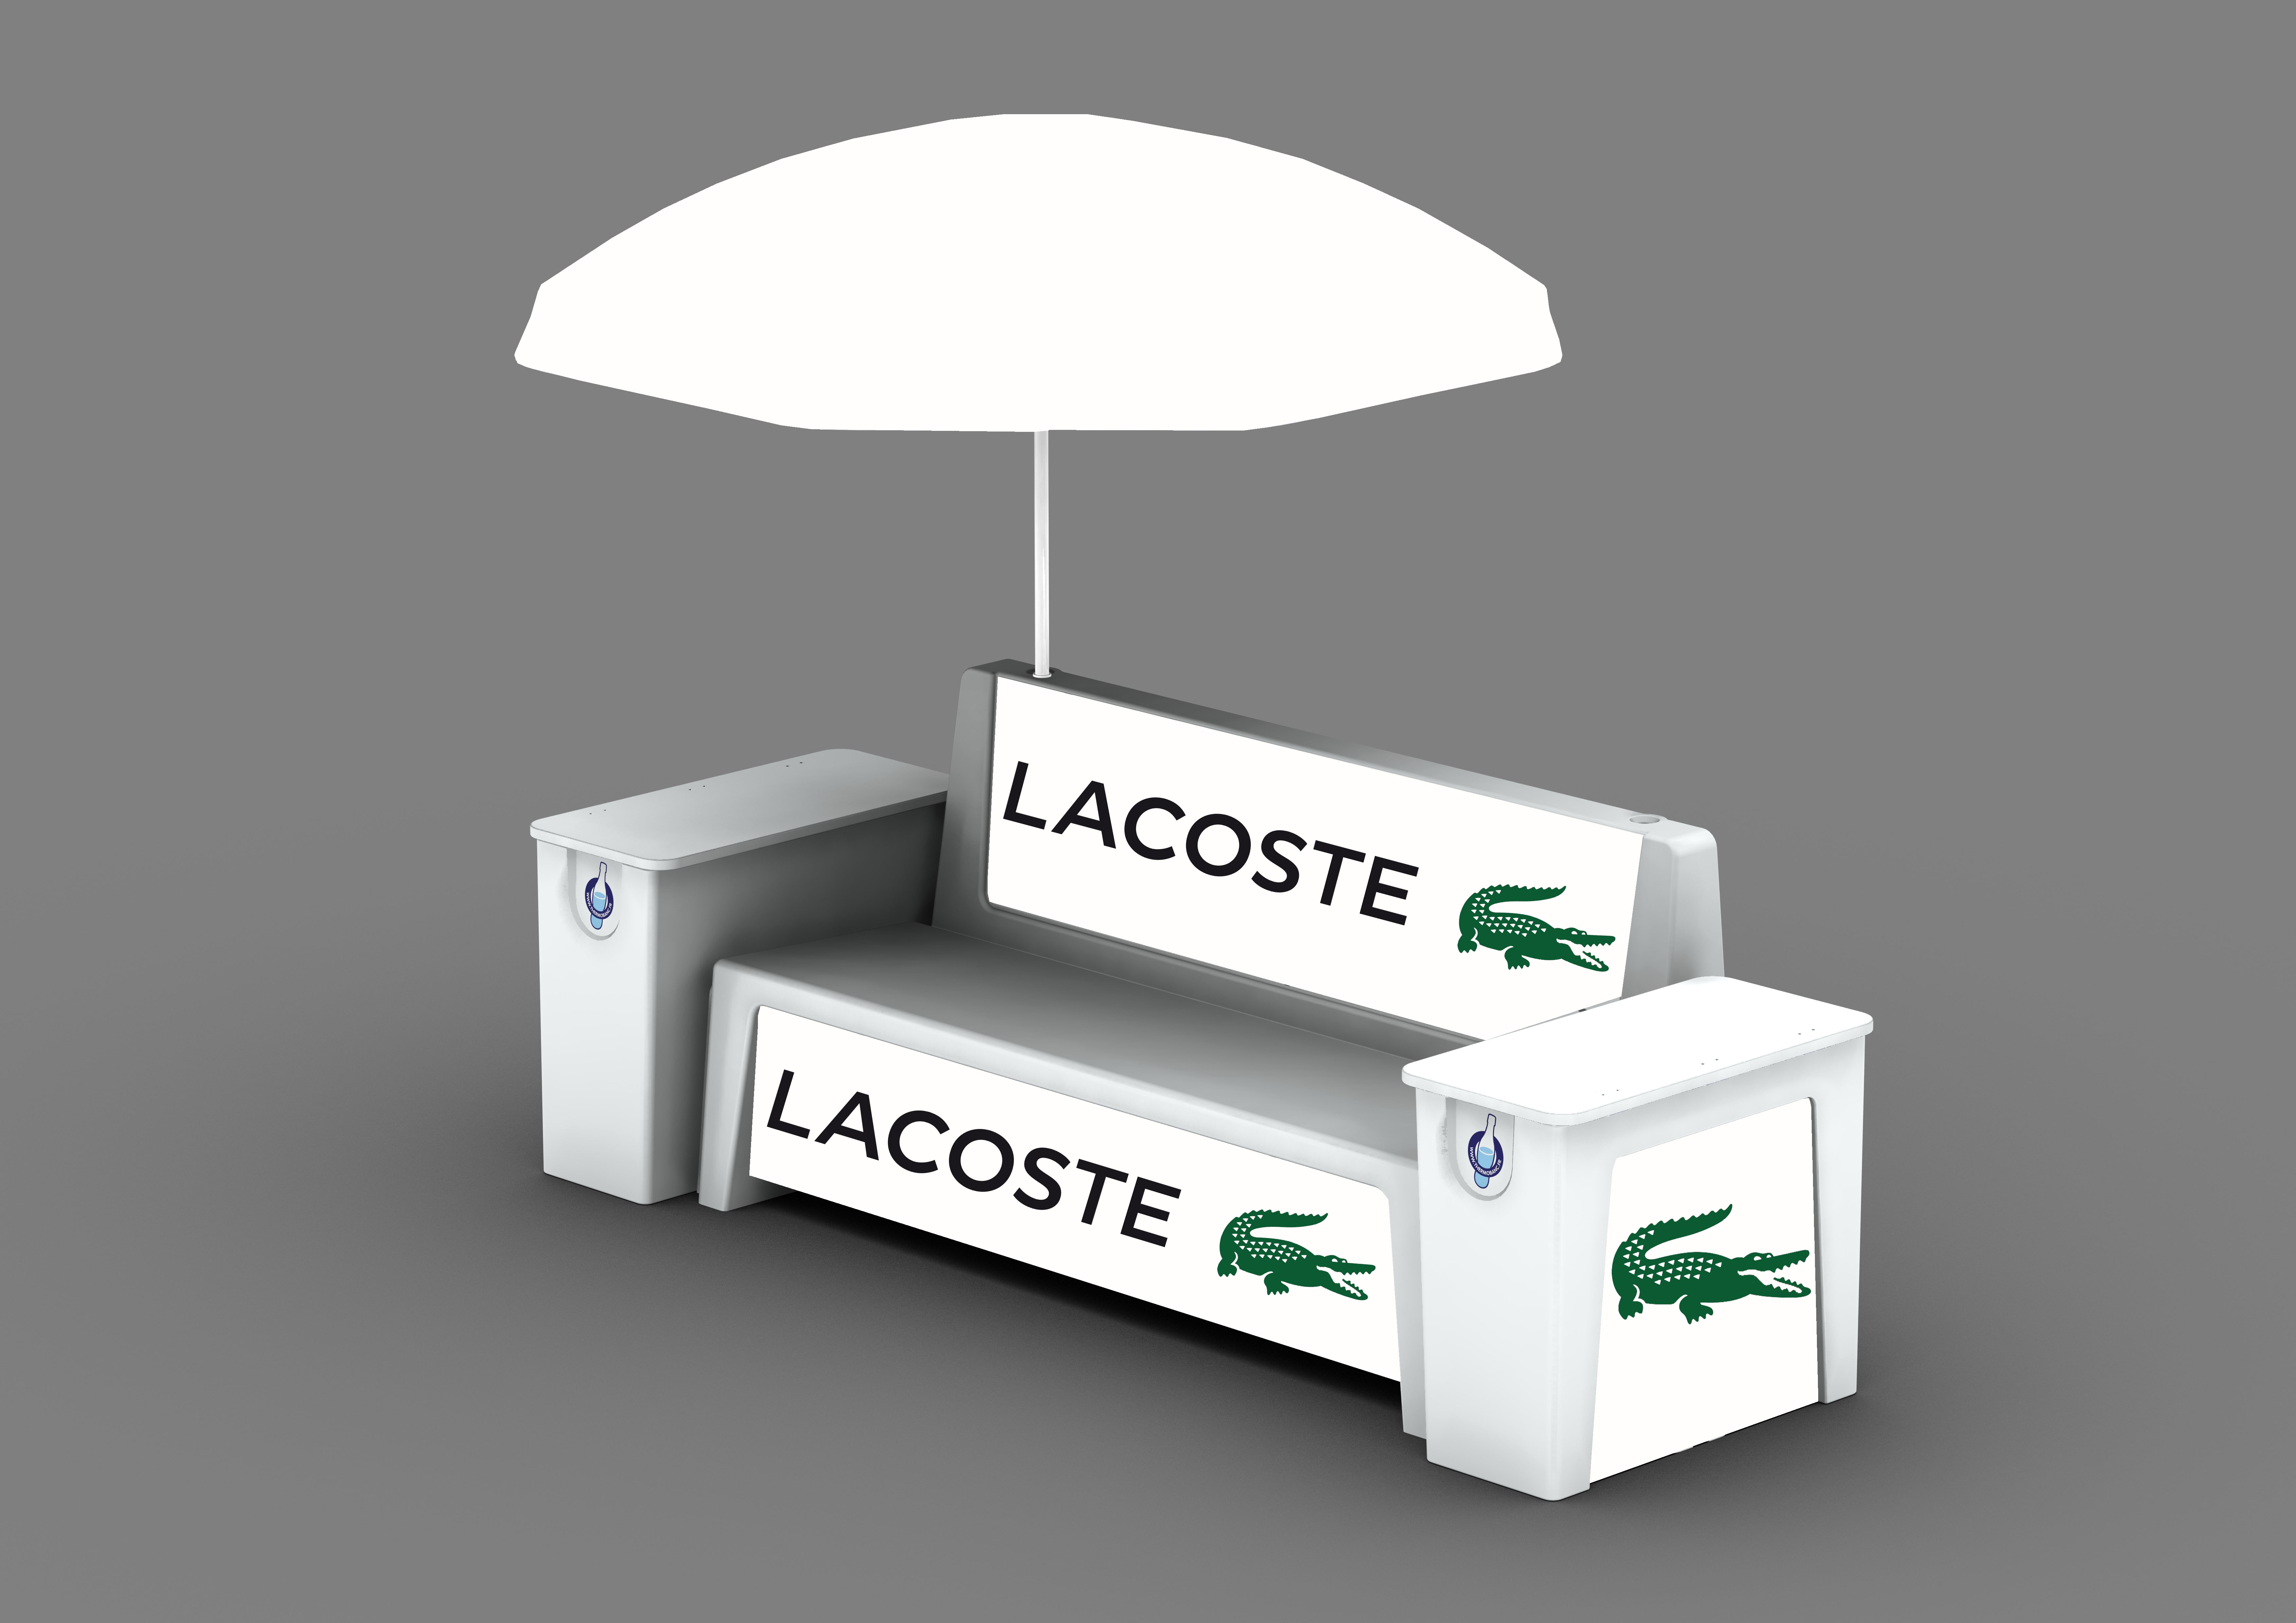 Thermobanc Lacoste